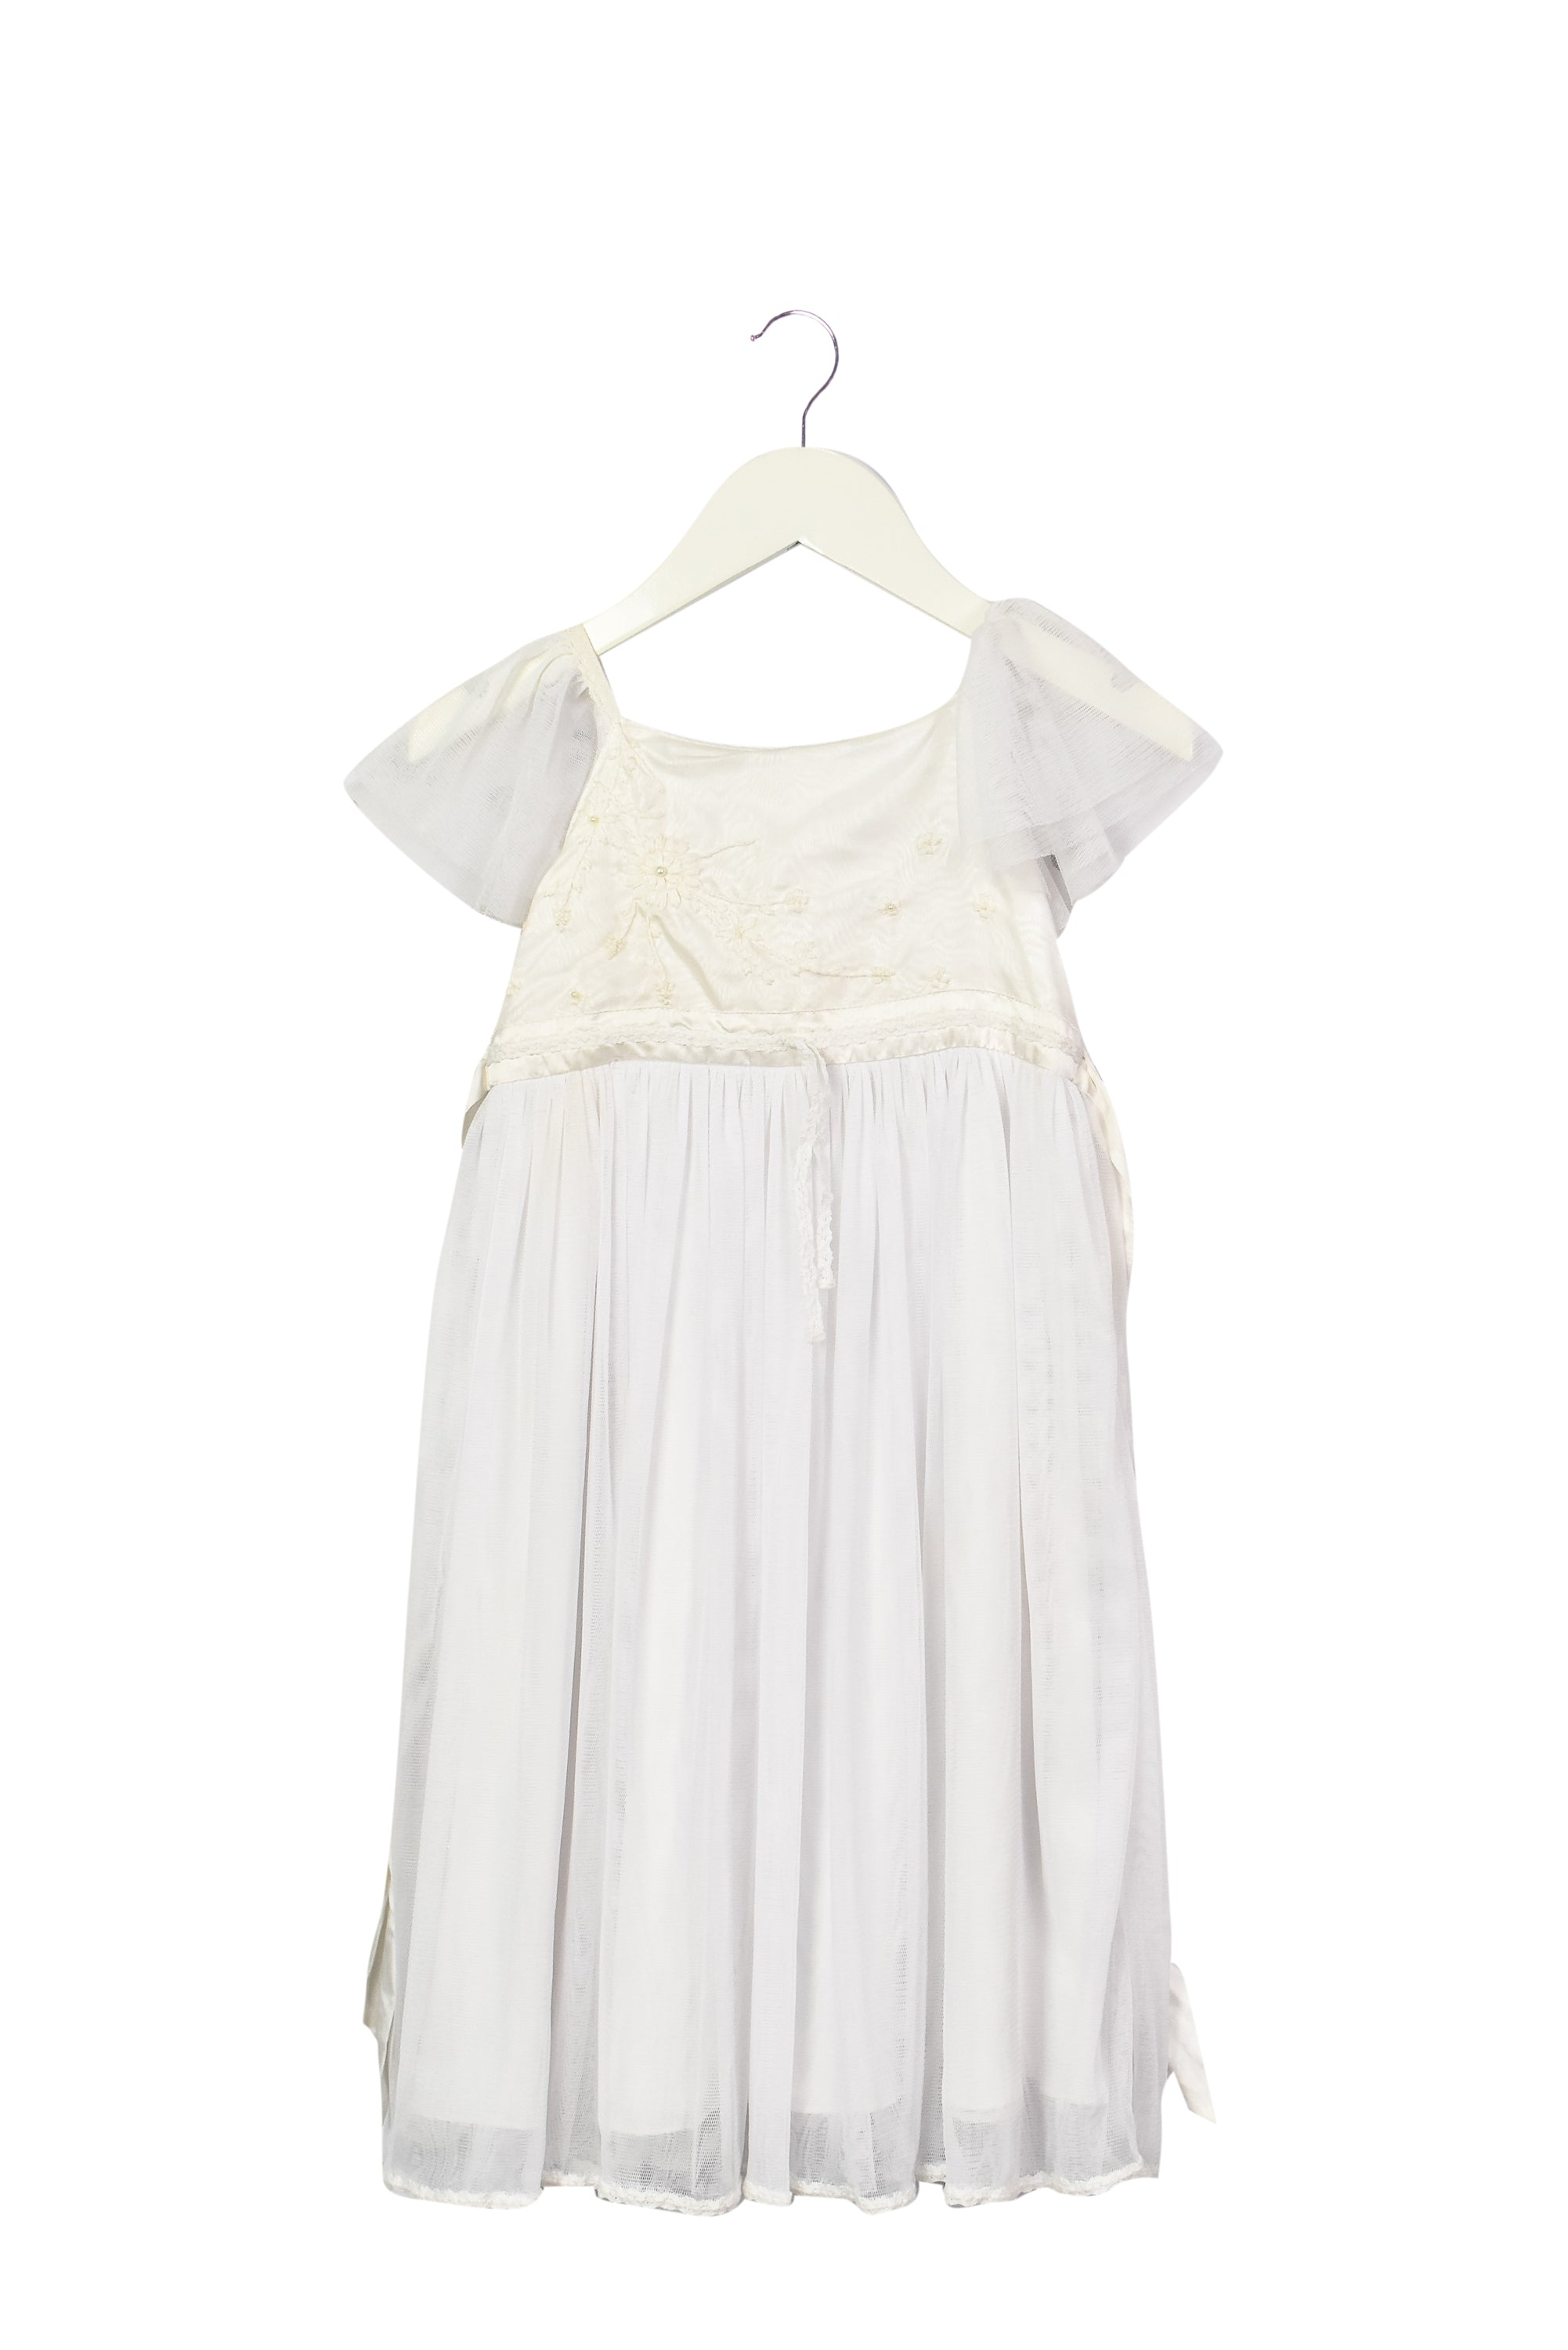 10037921 Monsoon Kids~Dress 3-4T at Retykle